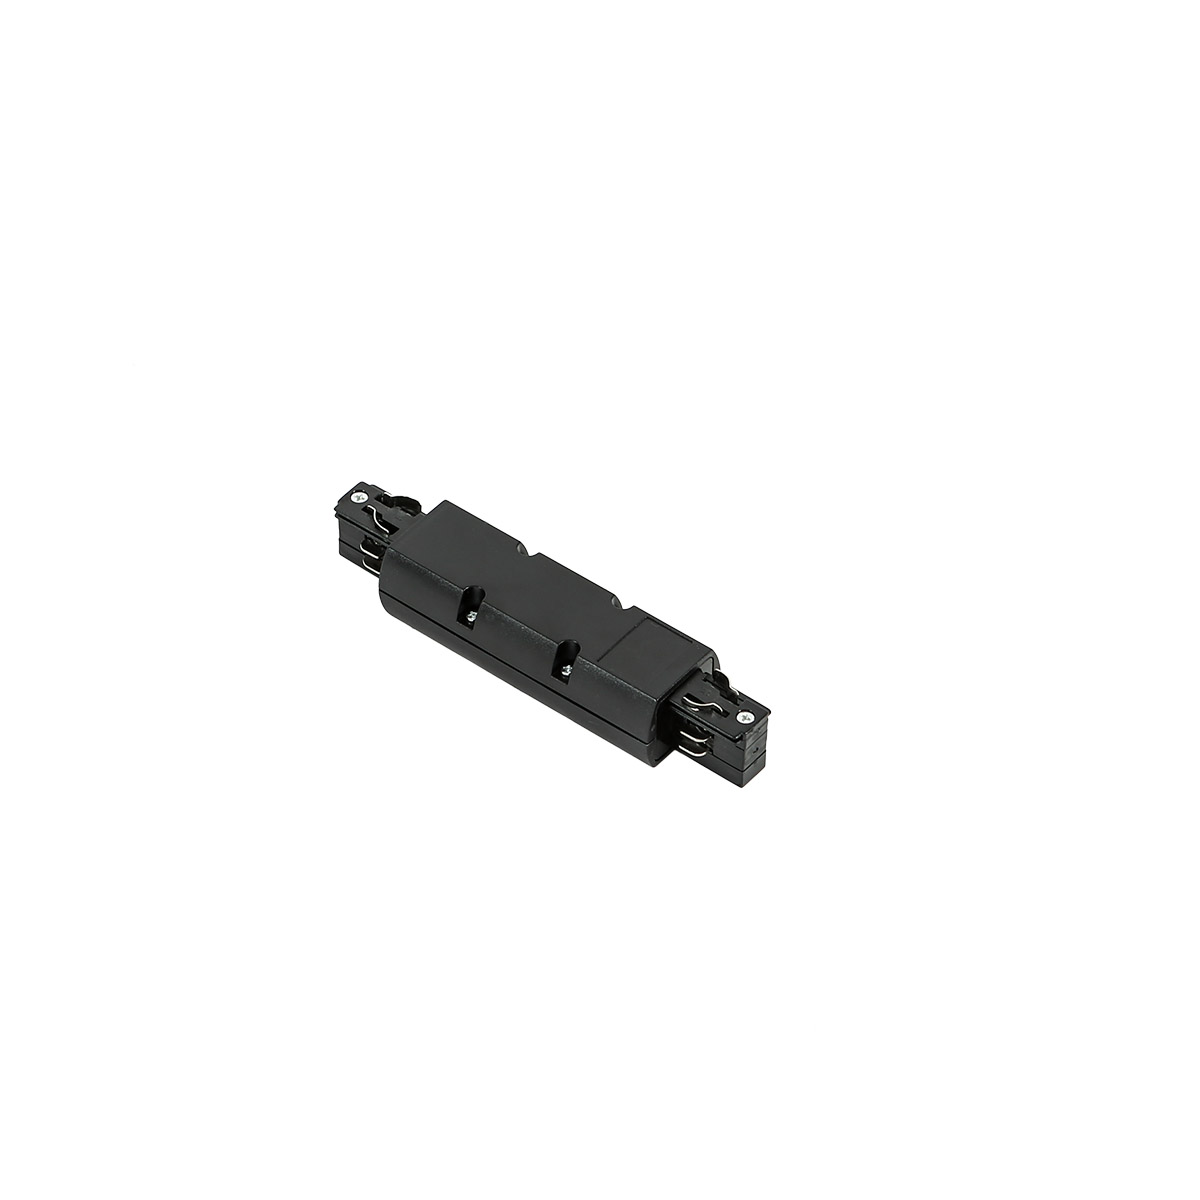 TR-I-JOINT-BL 4 phase track - I joint - black